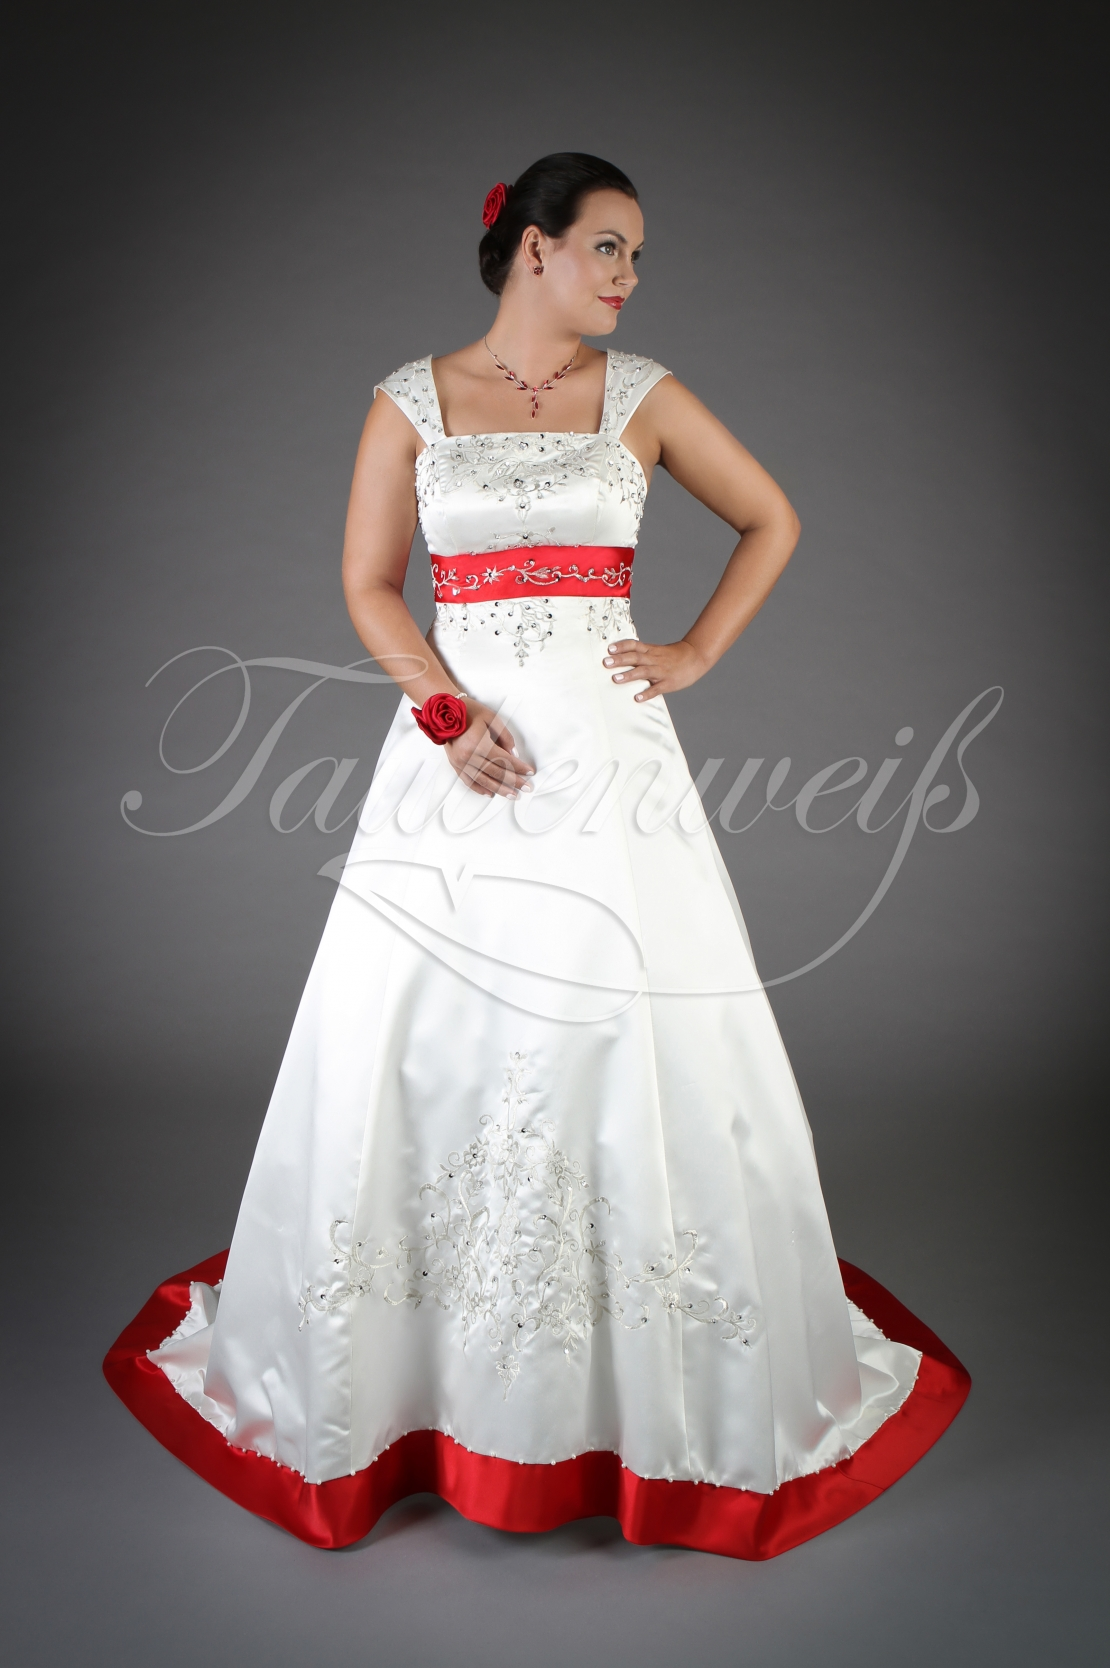 Wedding Dress Tw0077b With Red And Silver Beadings,Stylish Beautiful Dresses To Wear To A Wedding As A Guest